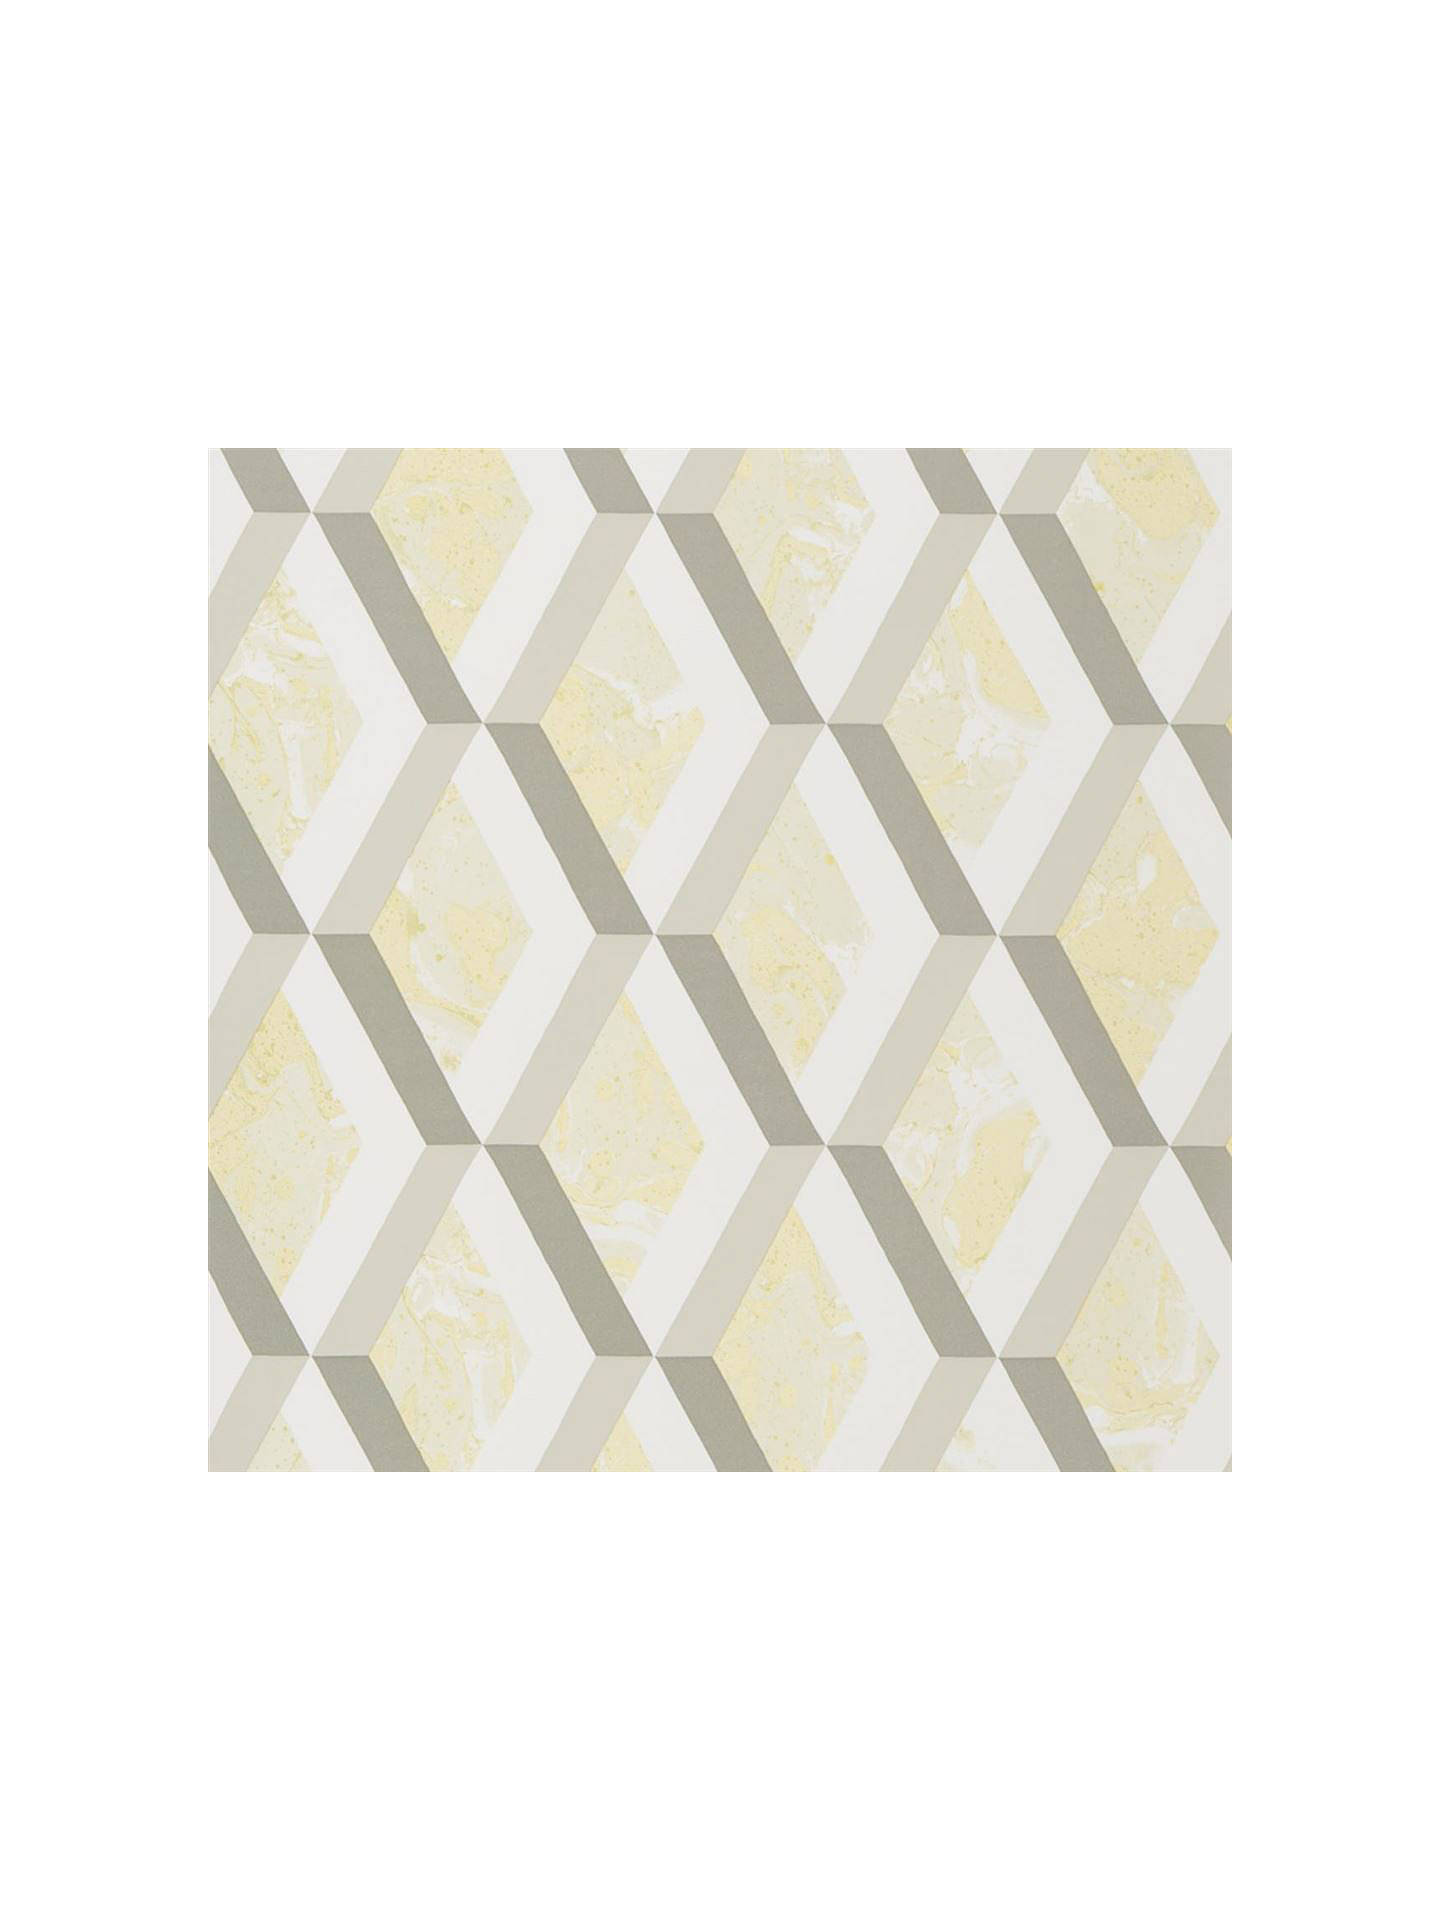 BuyDesigners Guild Jourdain Wallpaper, Limelight PDG1054/03 Online at johnlewis.com